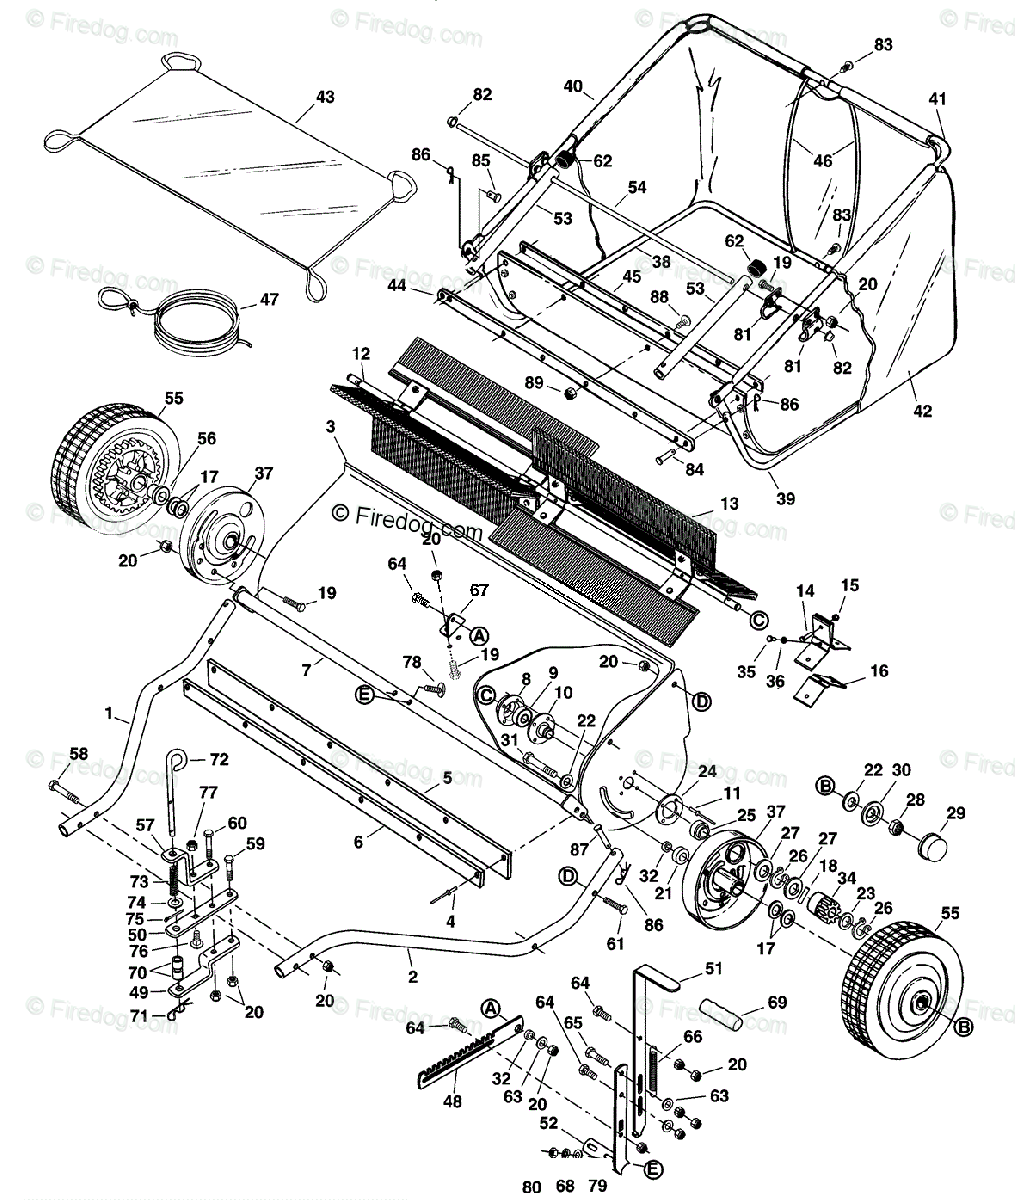 53 Buick Wiring Diagram Electrical Diagrams Schematic Of Sweeper Simple Electronic Circuits U2022 1996 Regal Ignition Switch